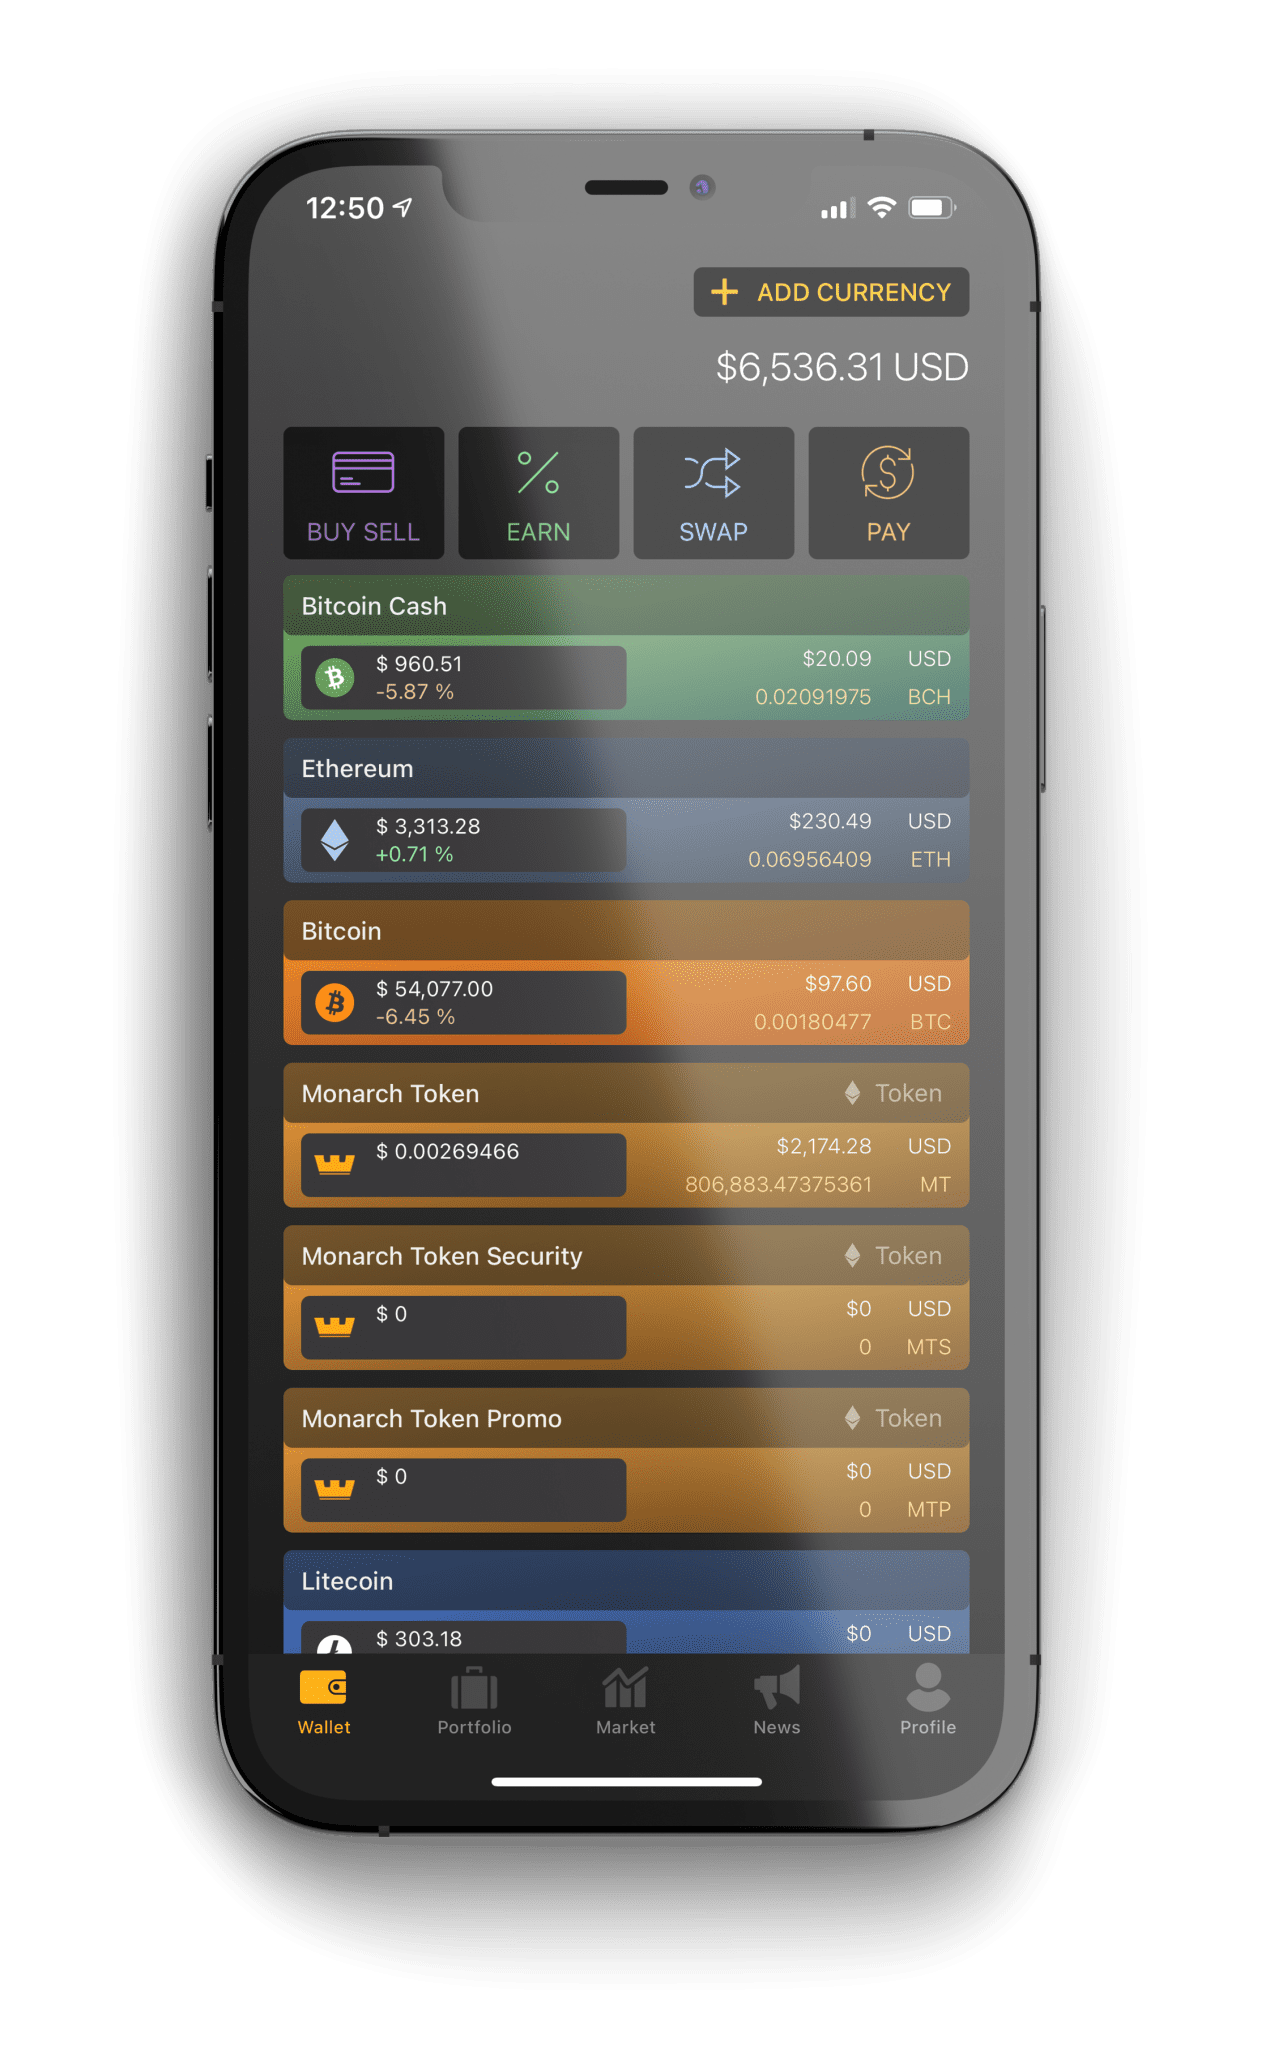 image of Monarch wallet showing the home wallet screen